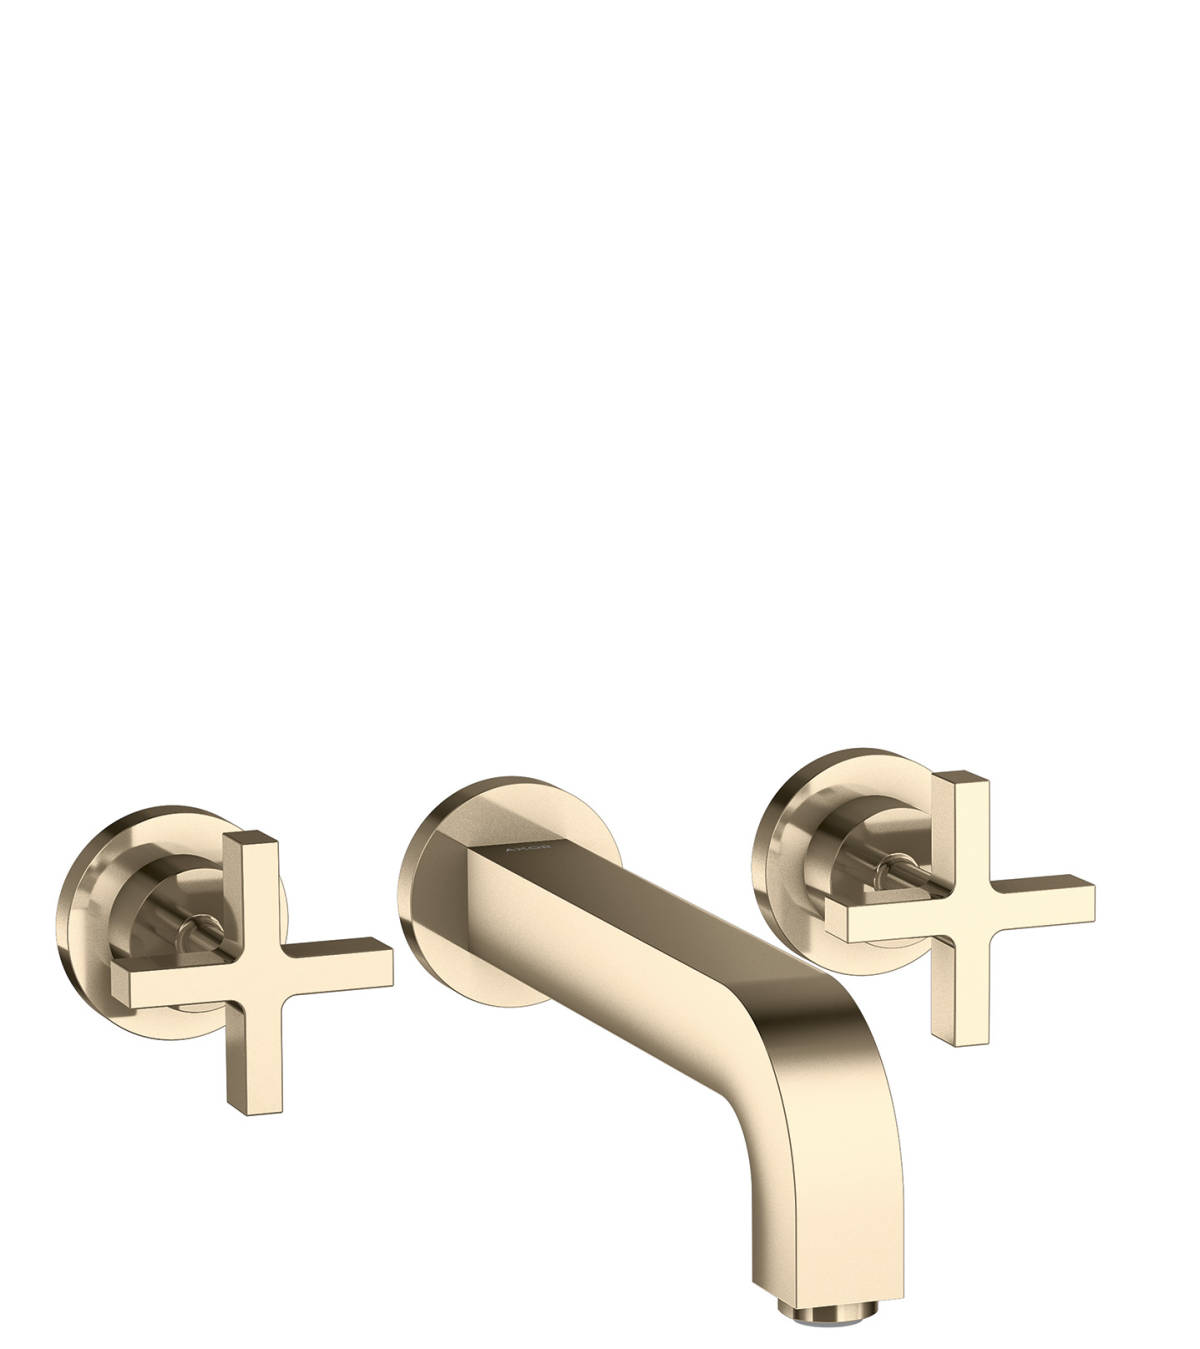 3-hole basin mixer for concealed installation wall-mounted with spout 222 mm, cross handles and escutcheons, Polished Nickel, 39143830